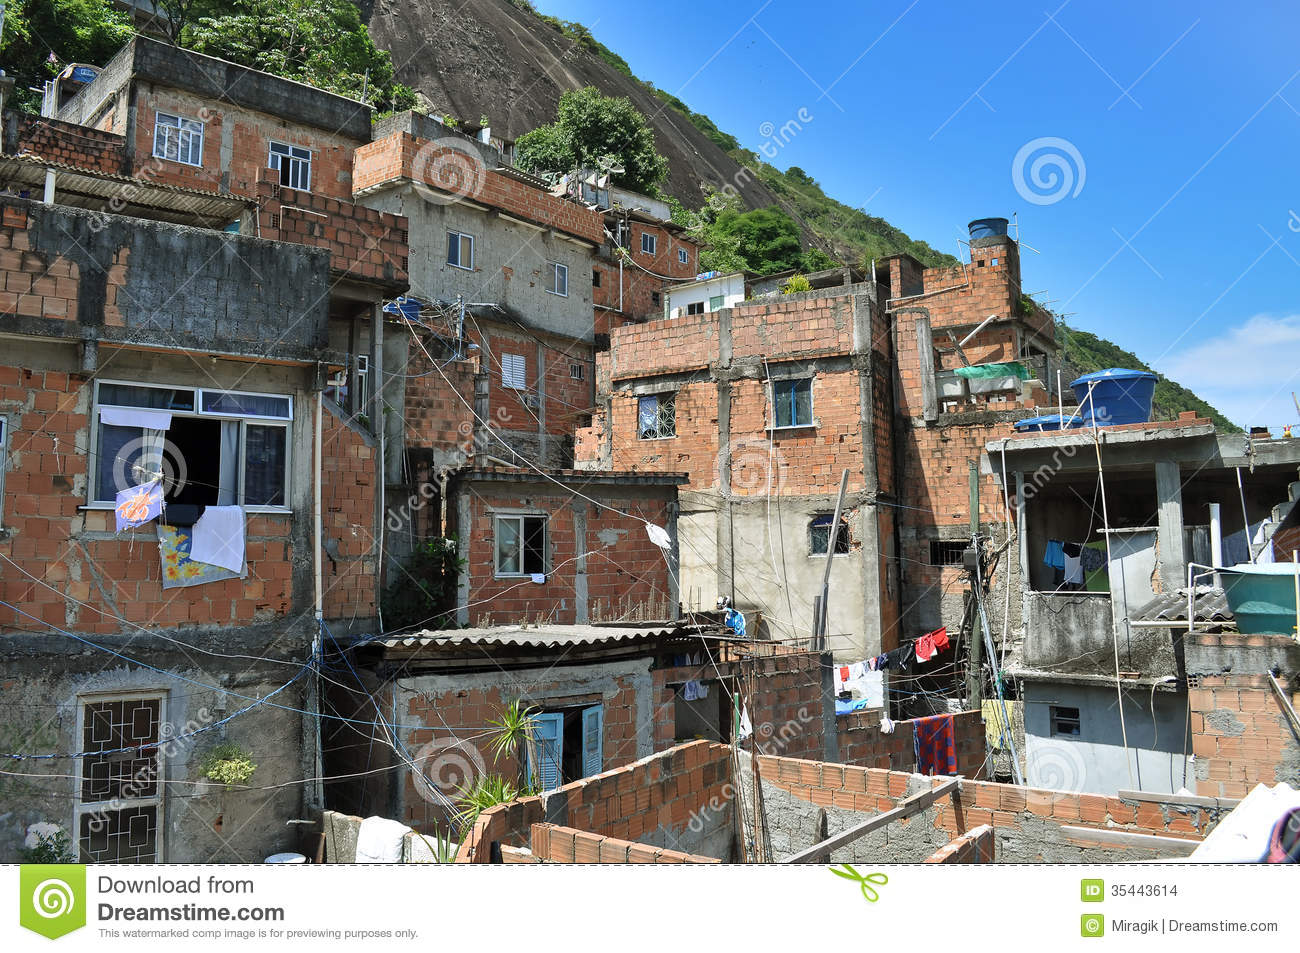 an introduction to the rios favelas communities The importance and challenges of putting favelas on the map clique aqui para portugu s mapping rio de janeiro's favelas can be a contentious political and social issue that offers viewers an immersive introduction to a few of rio's communities.